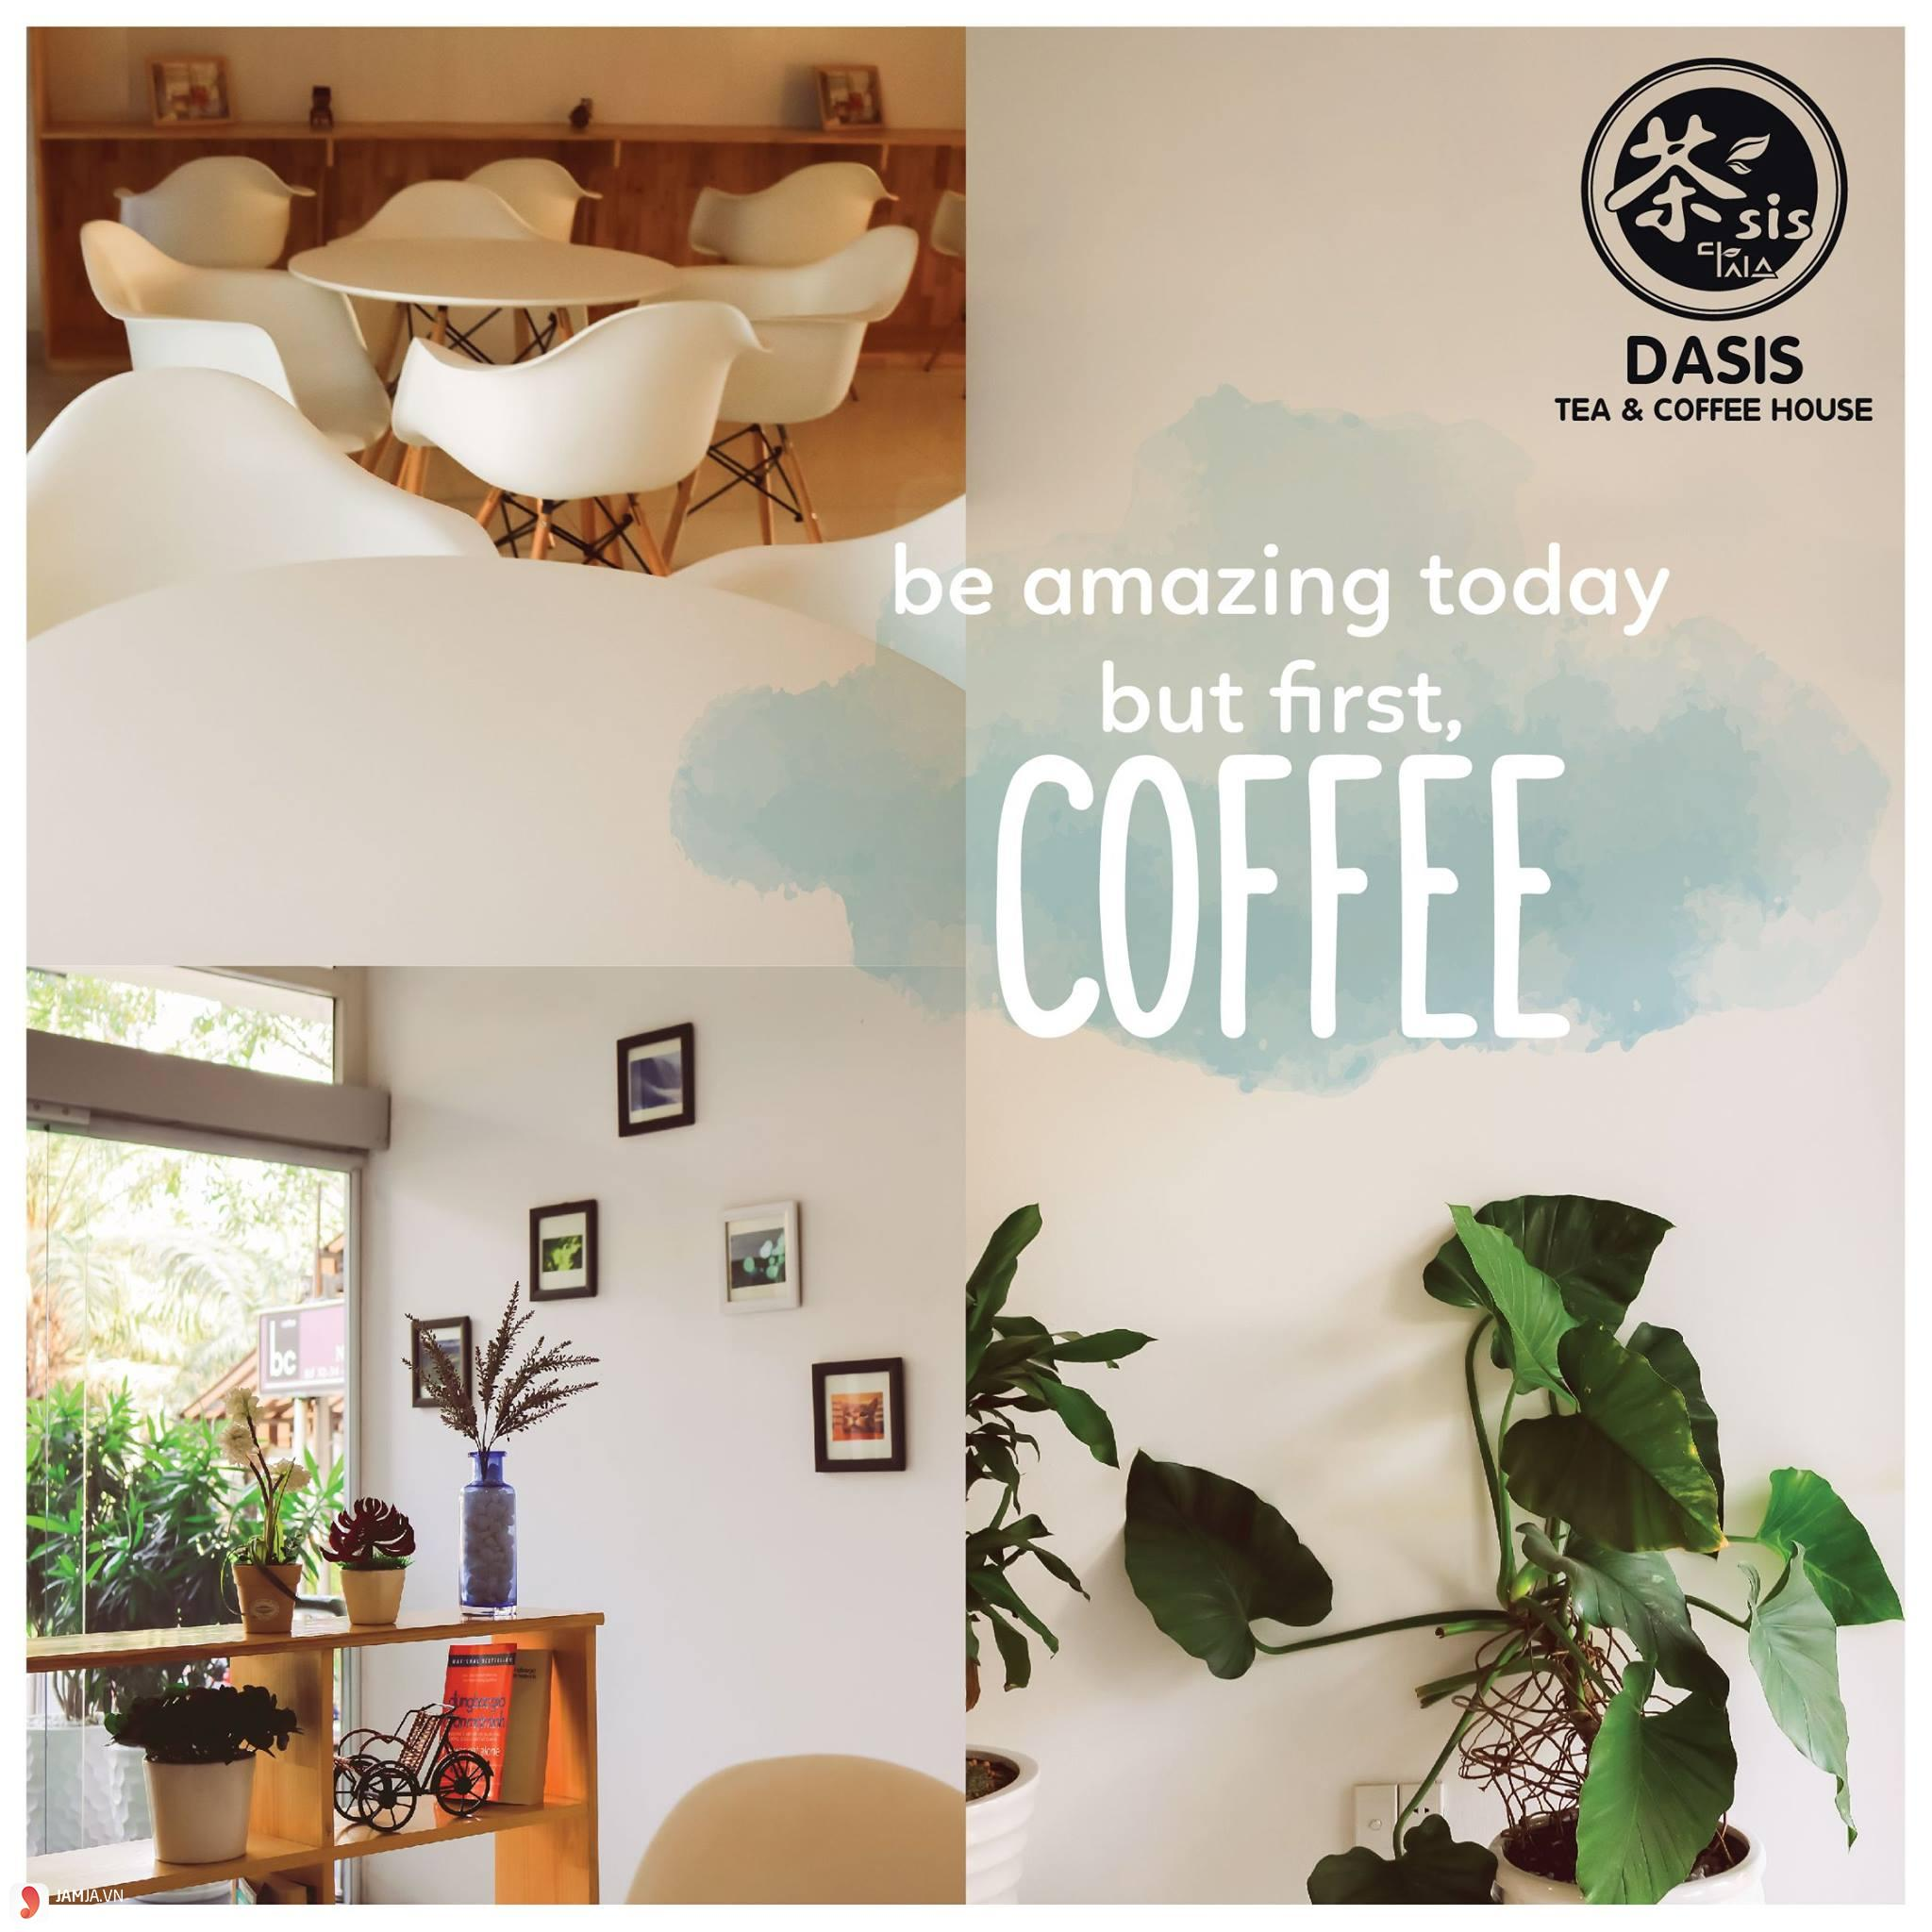 Dasis Tea & Coffee House decor